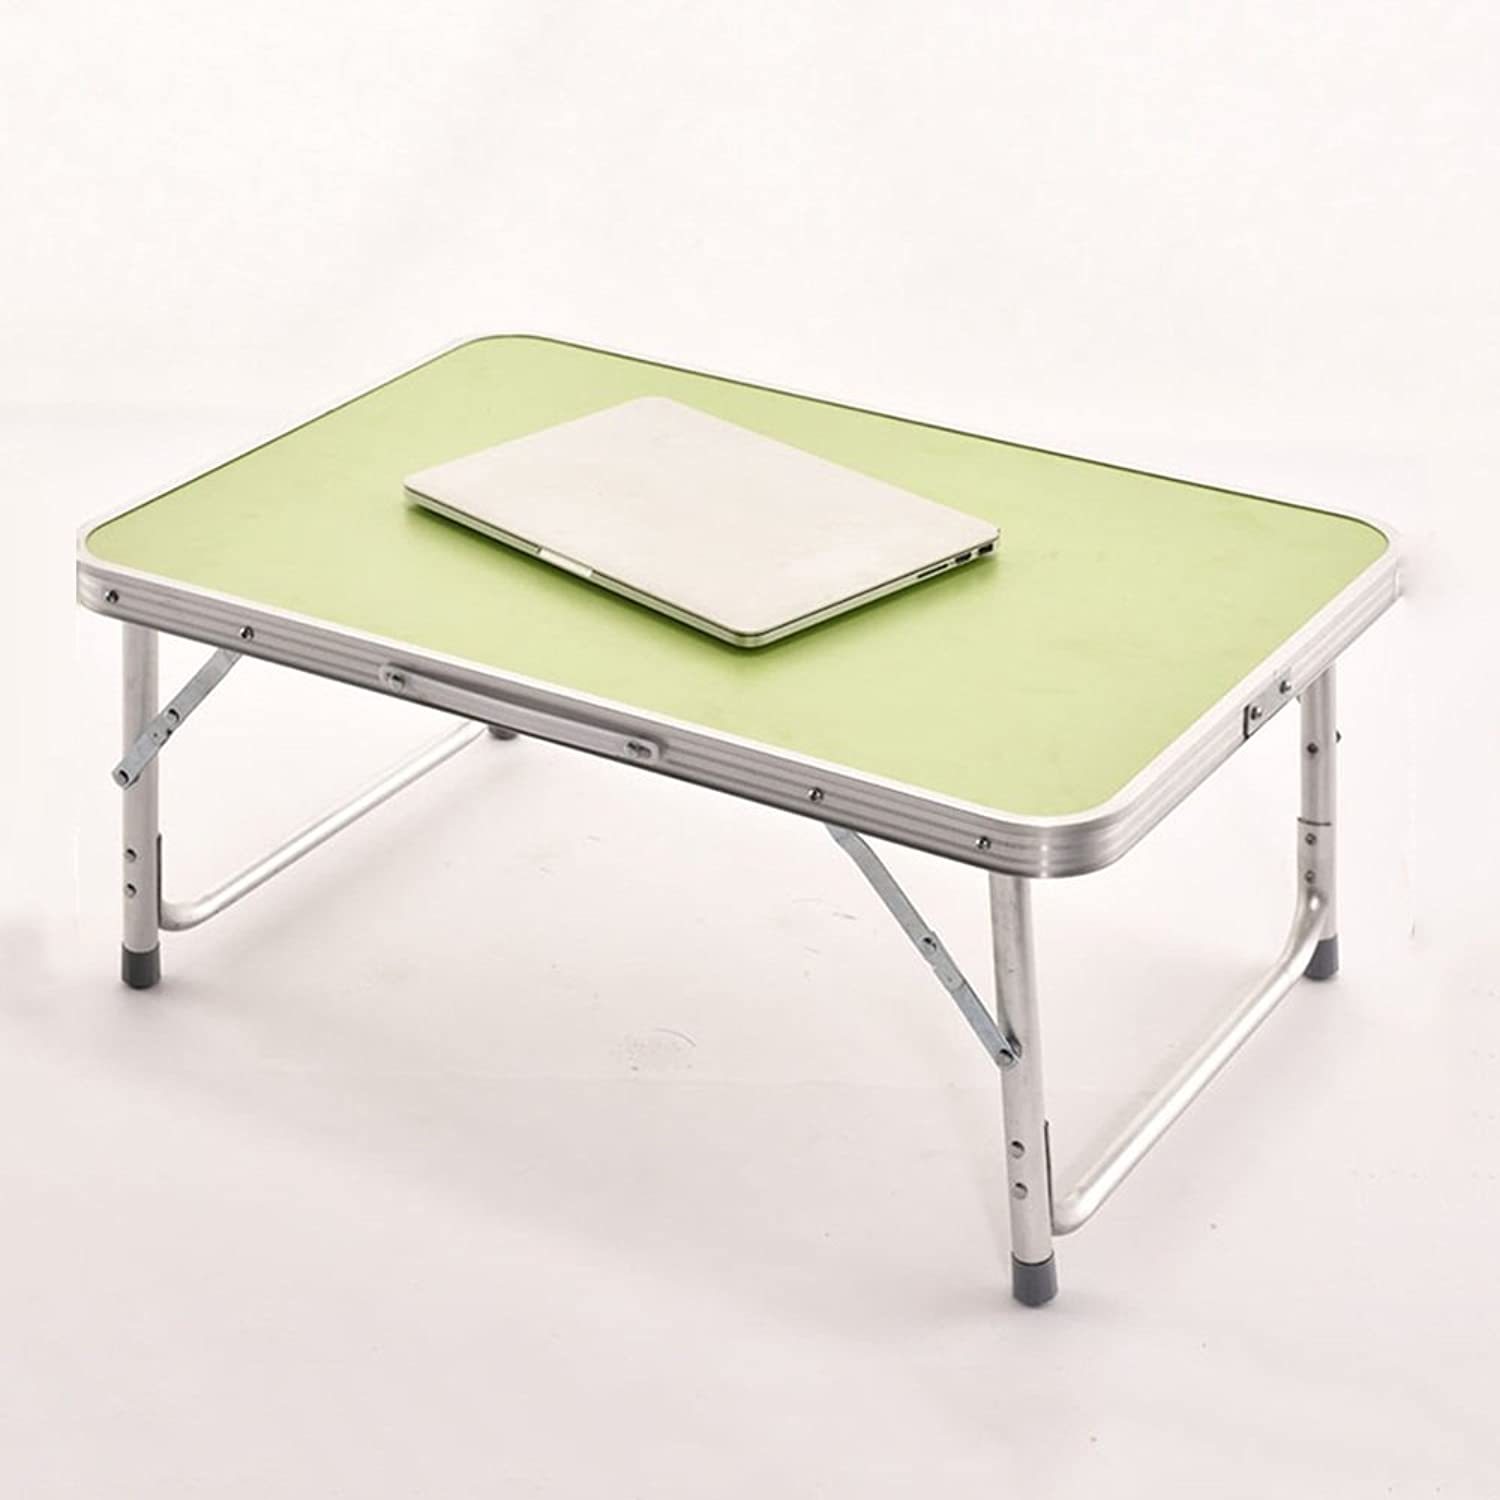 NAN Aluminum Alloy Foldable Simple Laptop Tables Bed Table Lazy Study Small Desk Folding Tables (color   B)